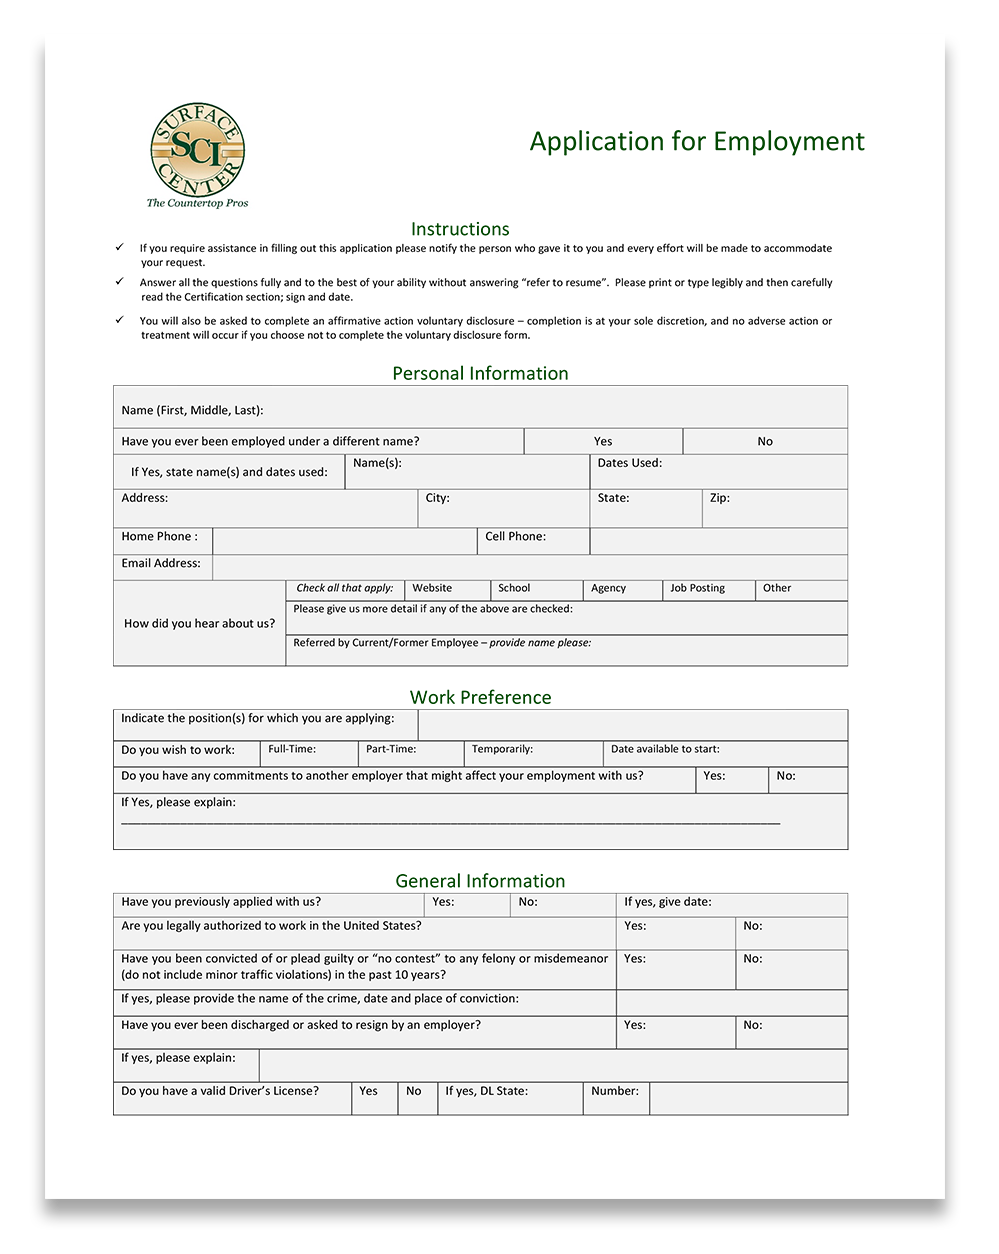 SCI-Application_for_Employment